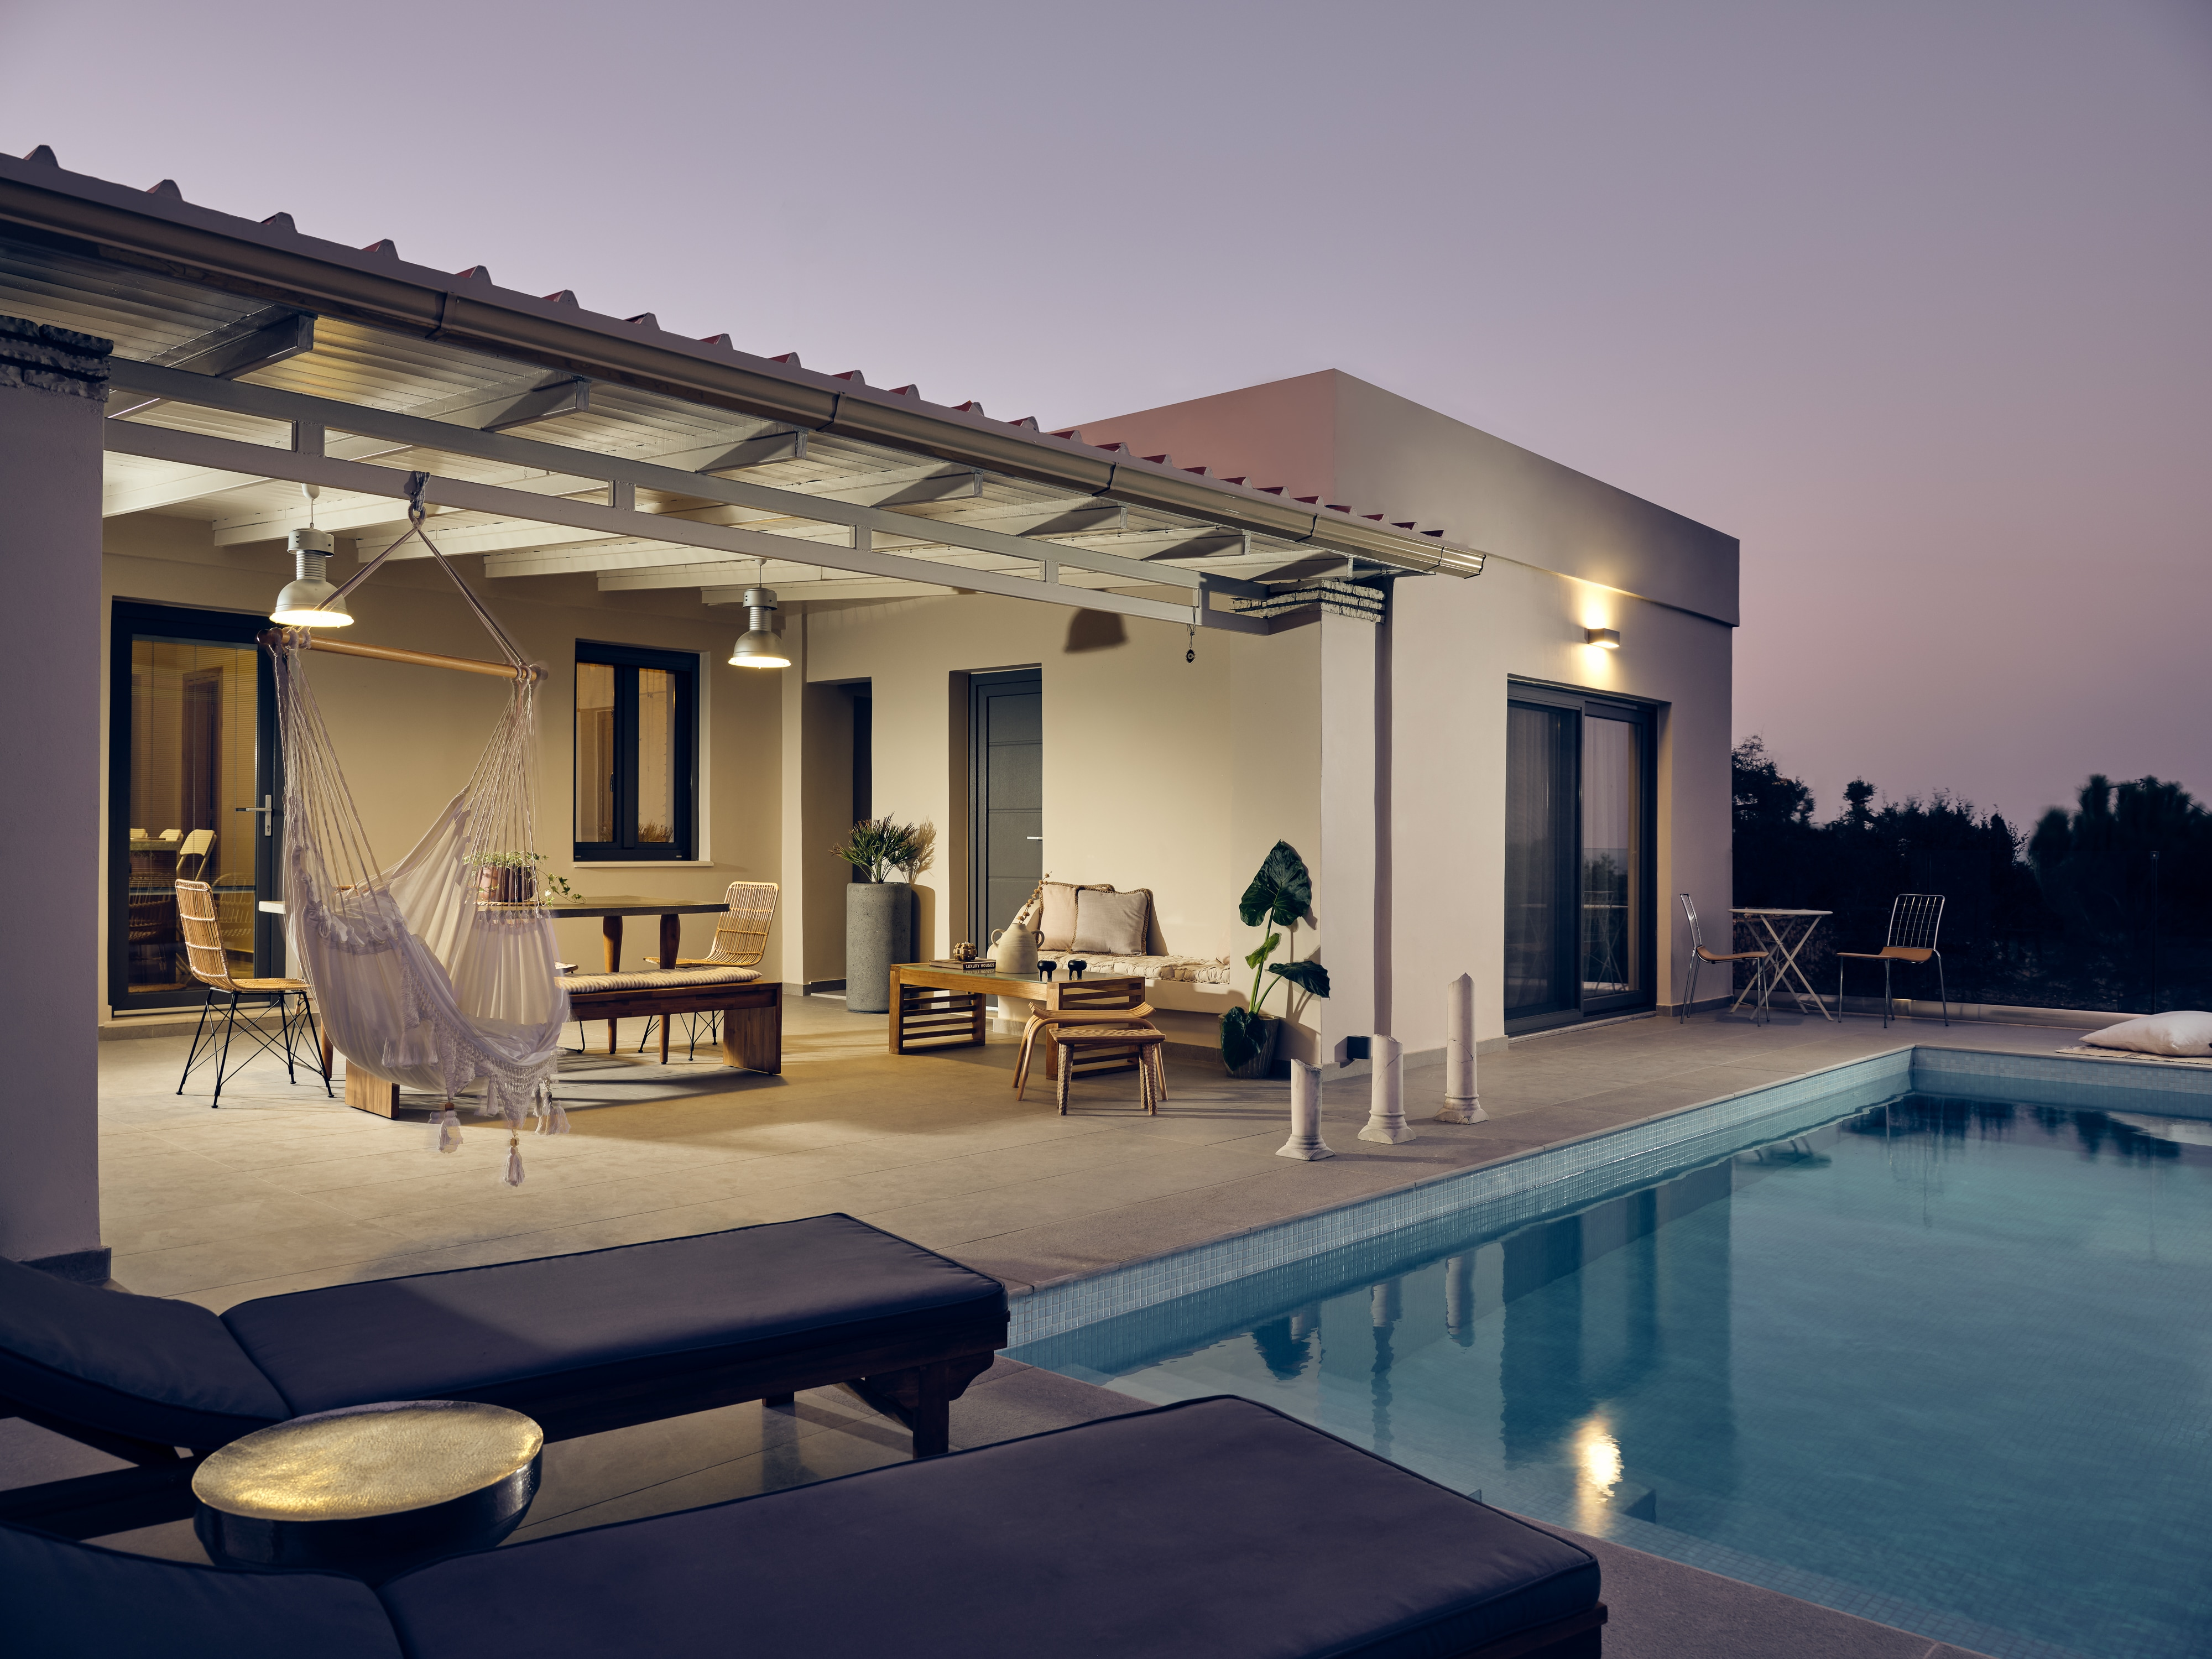 Property Image 1 - Stylish 3 bedroom villa with private pool